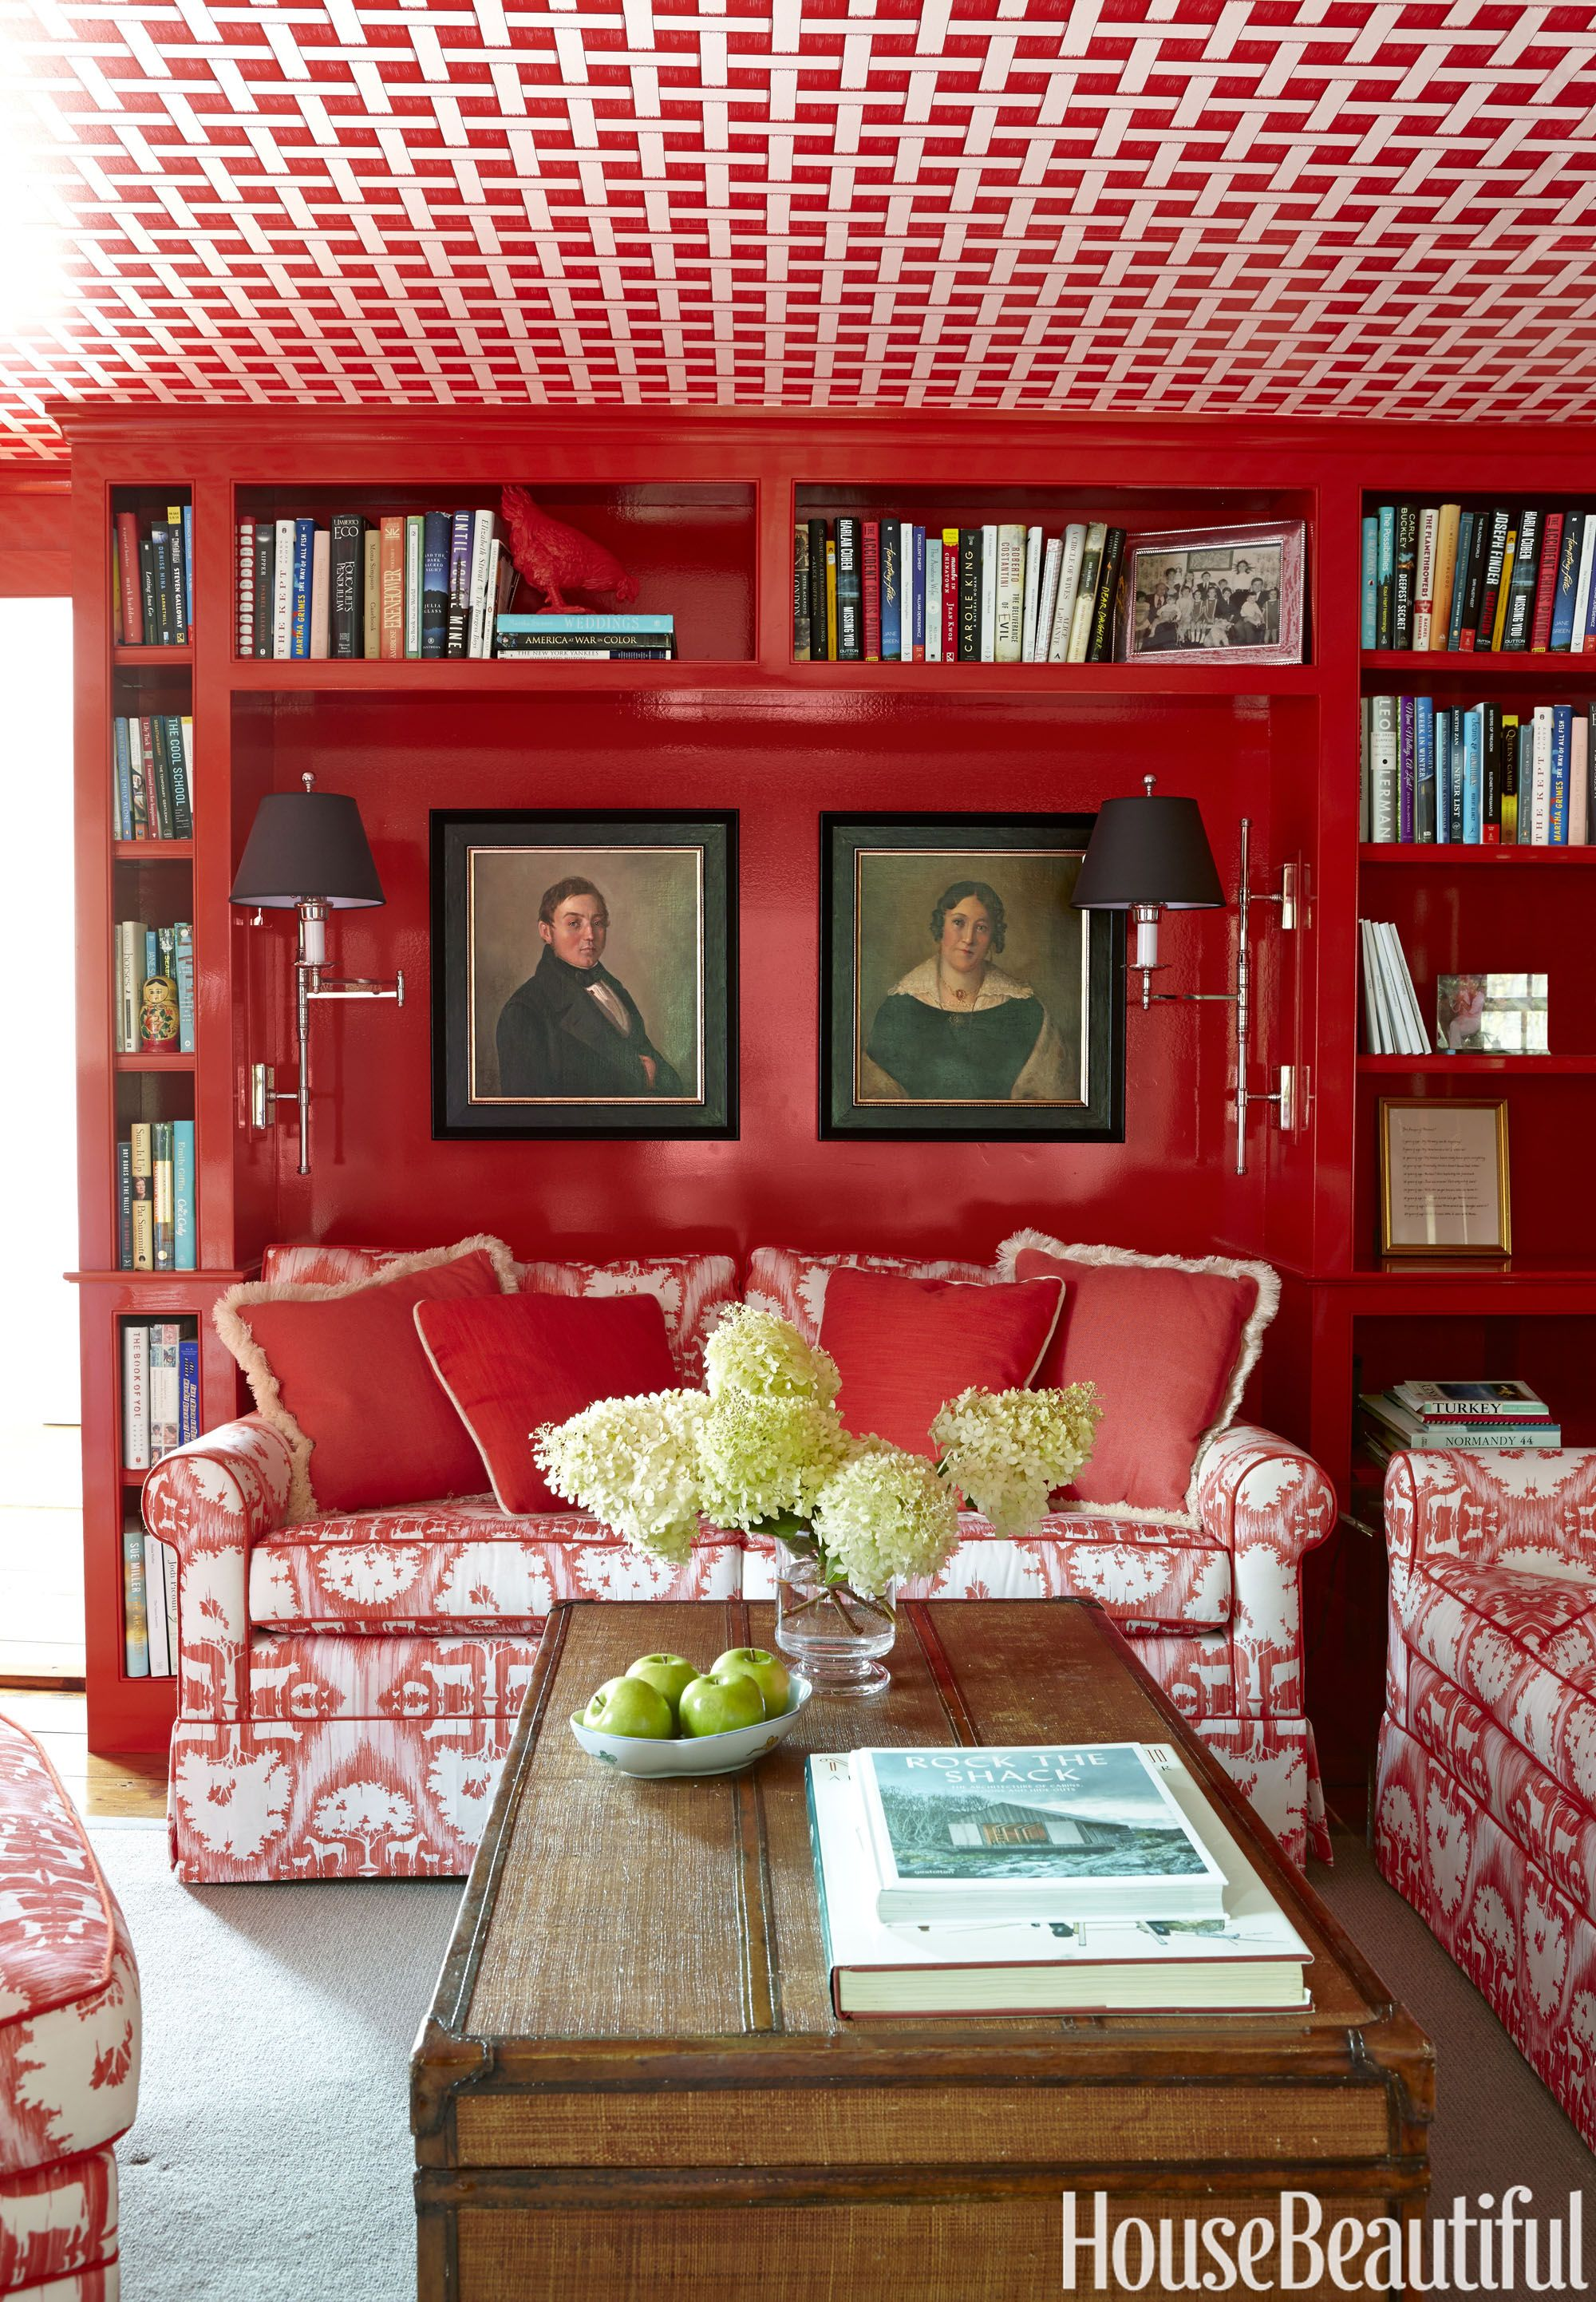 13 Different Shades of Red - Best Red Paint Colors